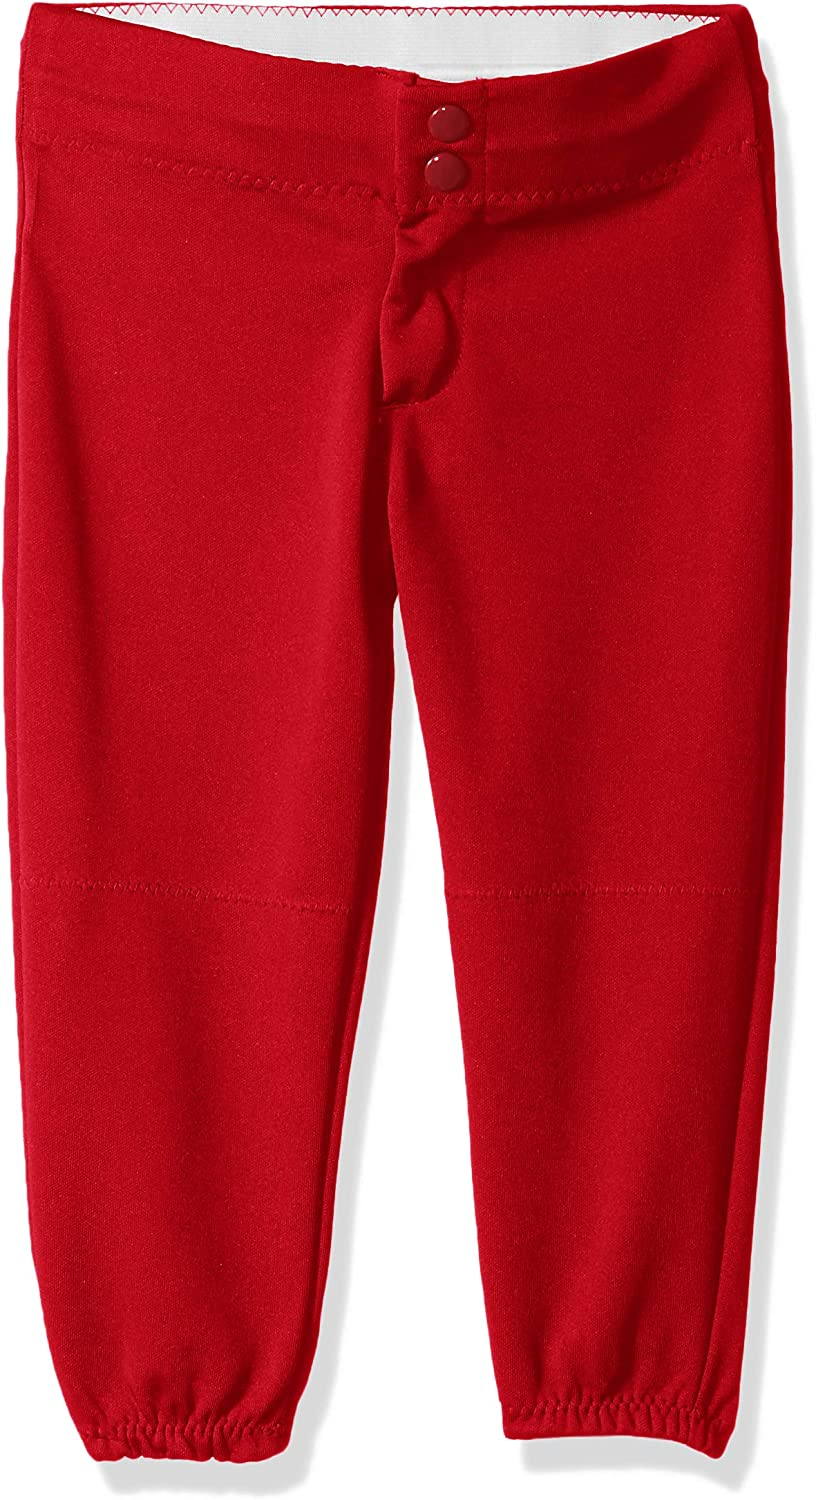 Alleson Athletic Baseball//softball Pants Red Sz Youth M